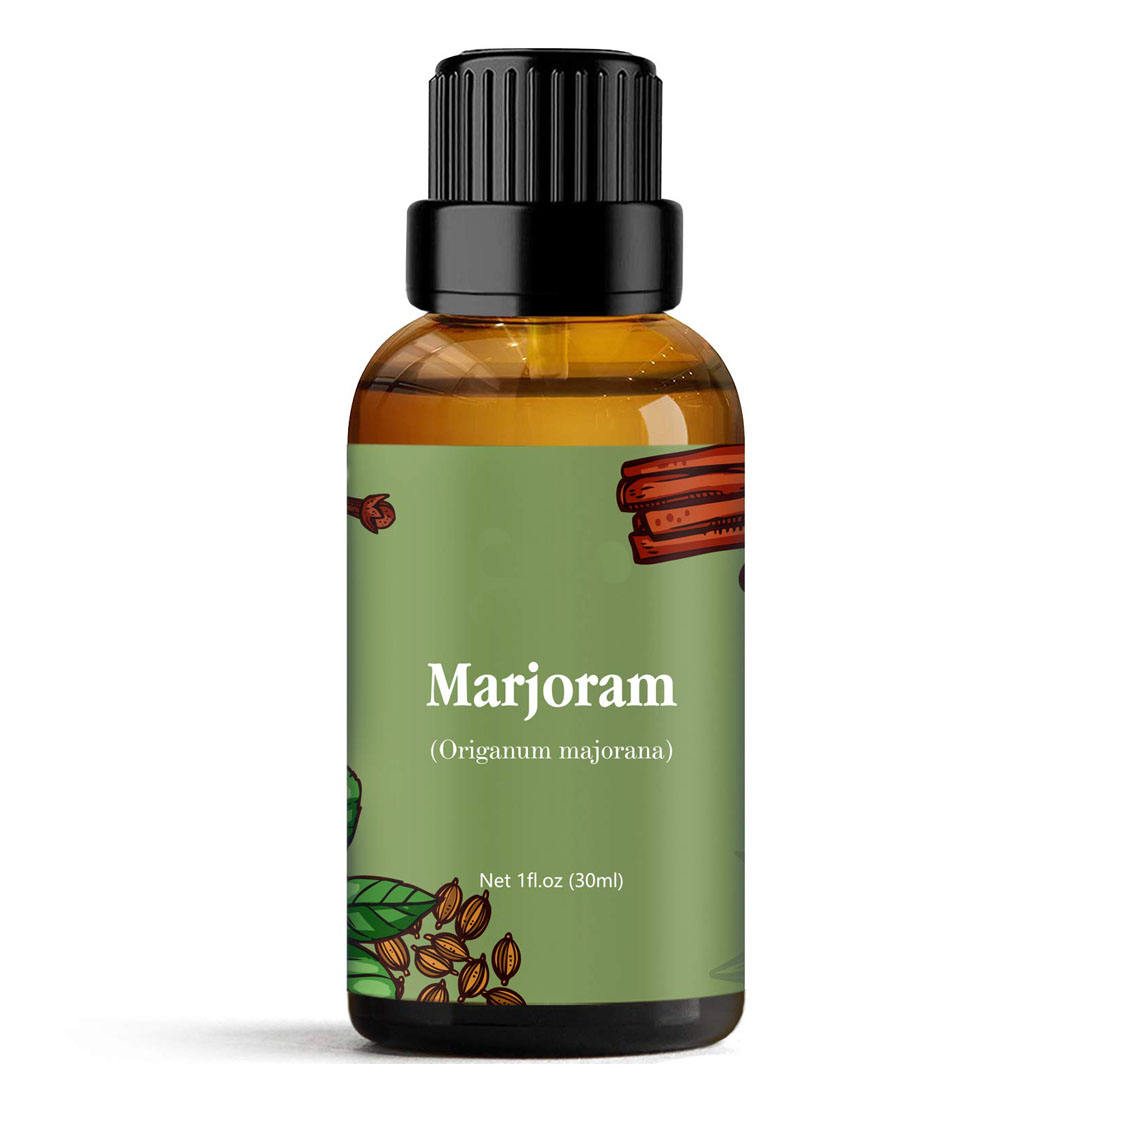 OEM Marjoram Essential Oil 15ml Bare Oils USDA Certified Organic Essential Oils With Private Label